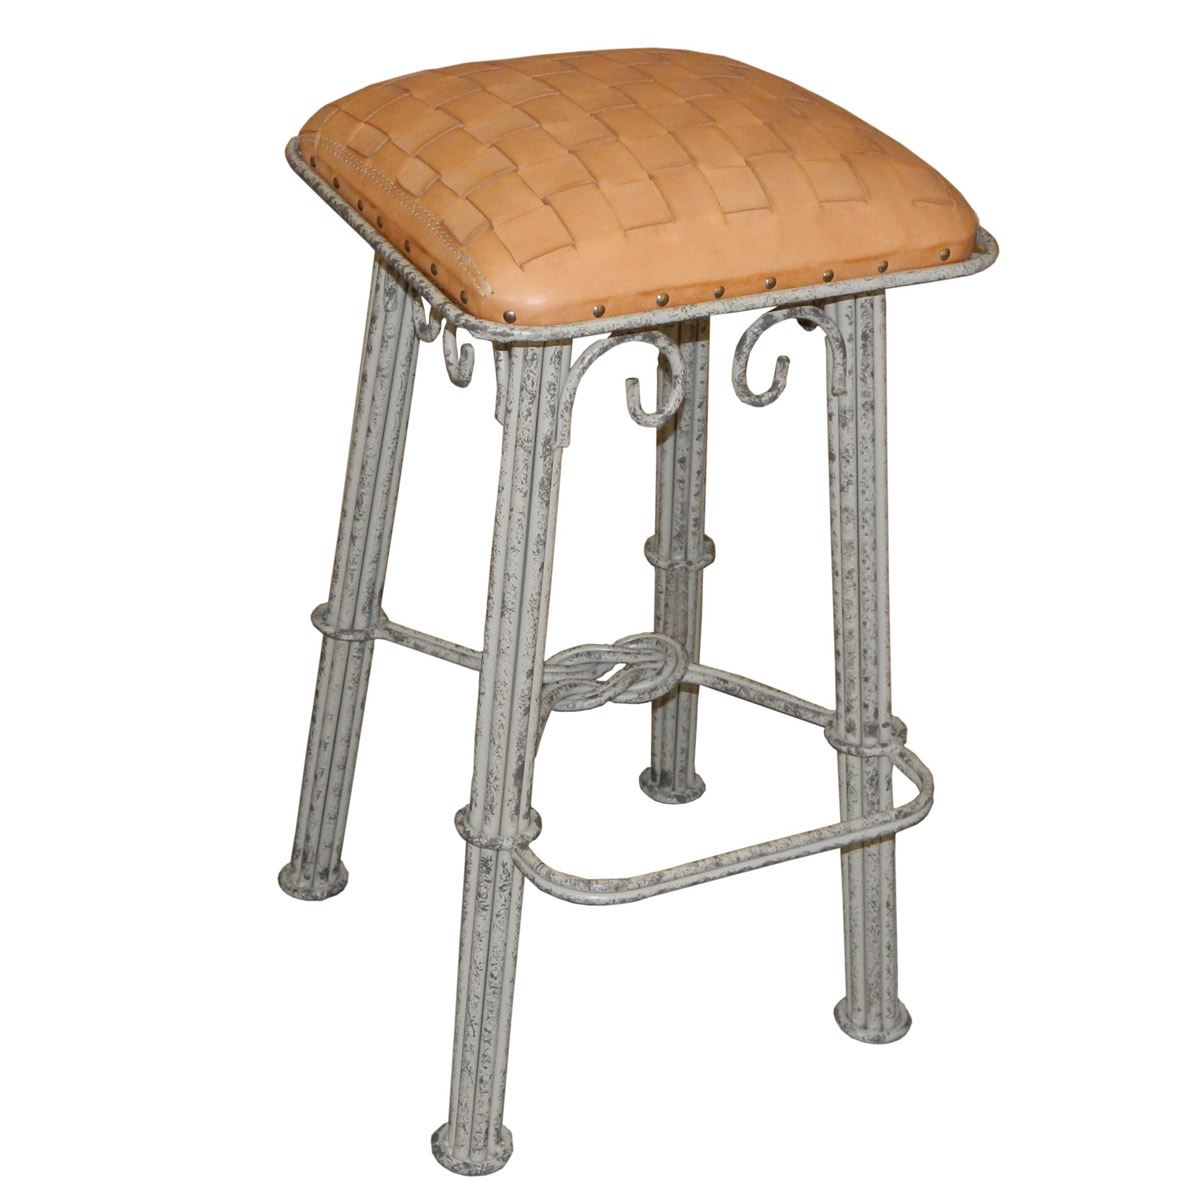 Natural Braided Leather Counter Stool - Ash Gray Iron